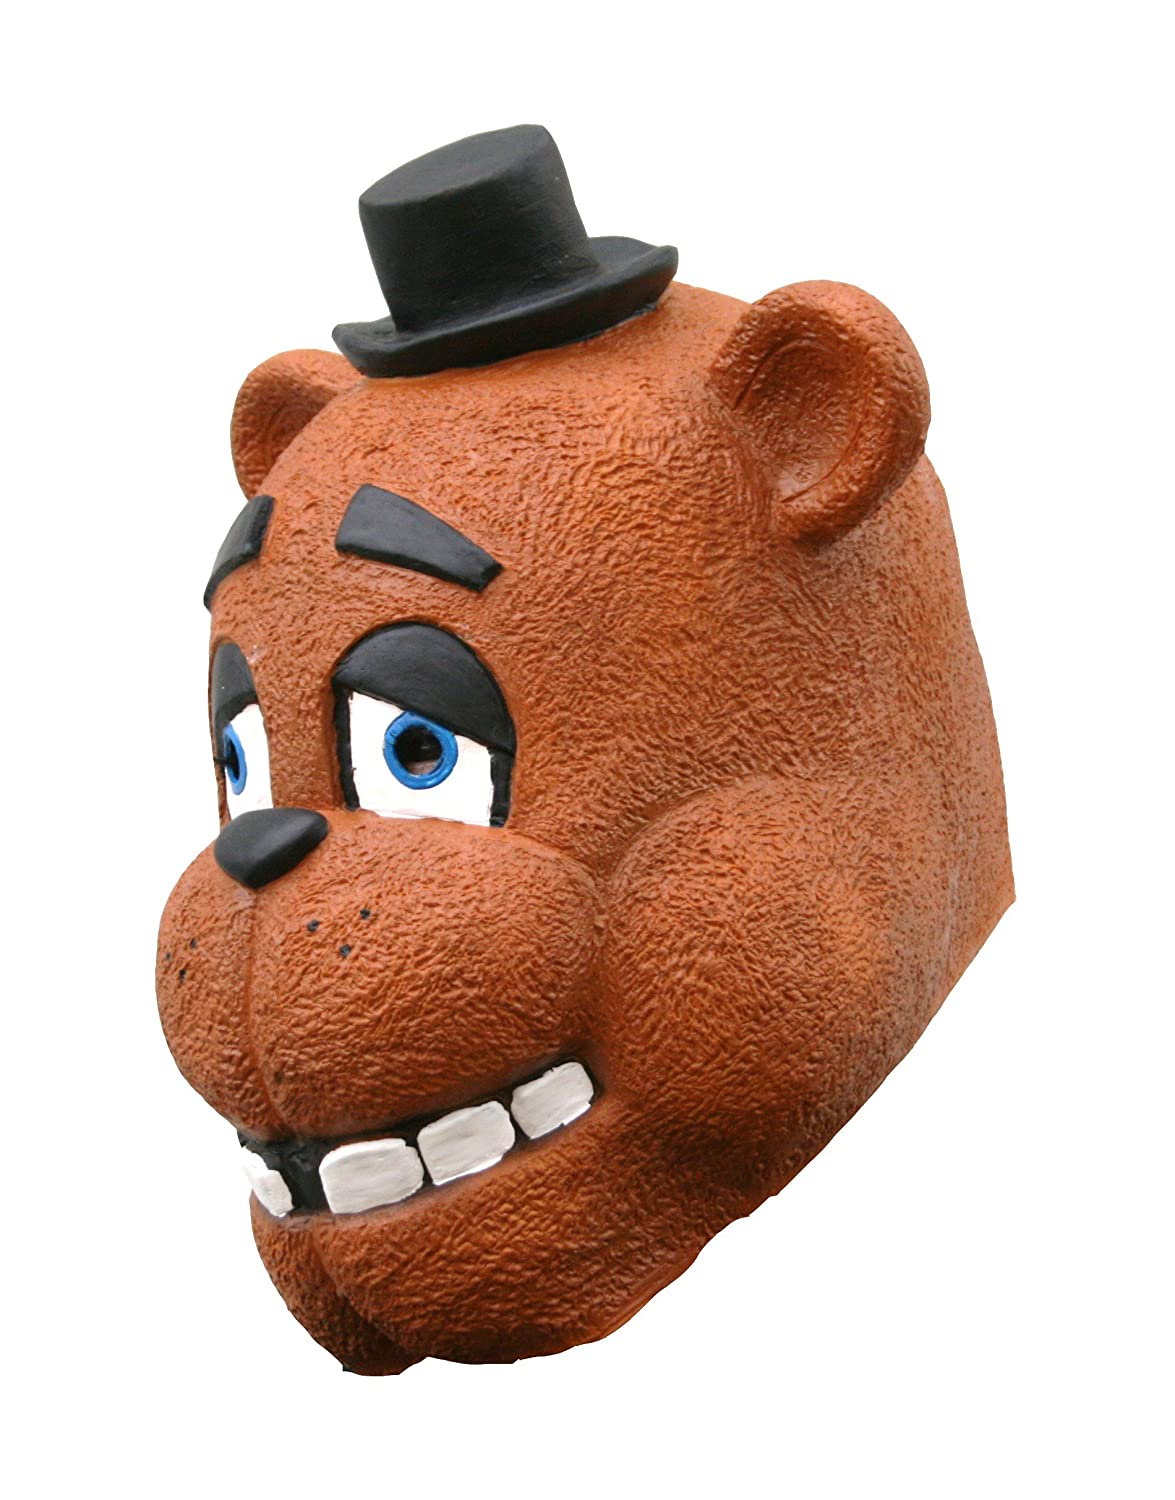 Fnaf masks for sale - Amazon Com Mypartyshirt Freddy Adult Mask Five Nights At Freddy S Clothing